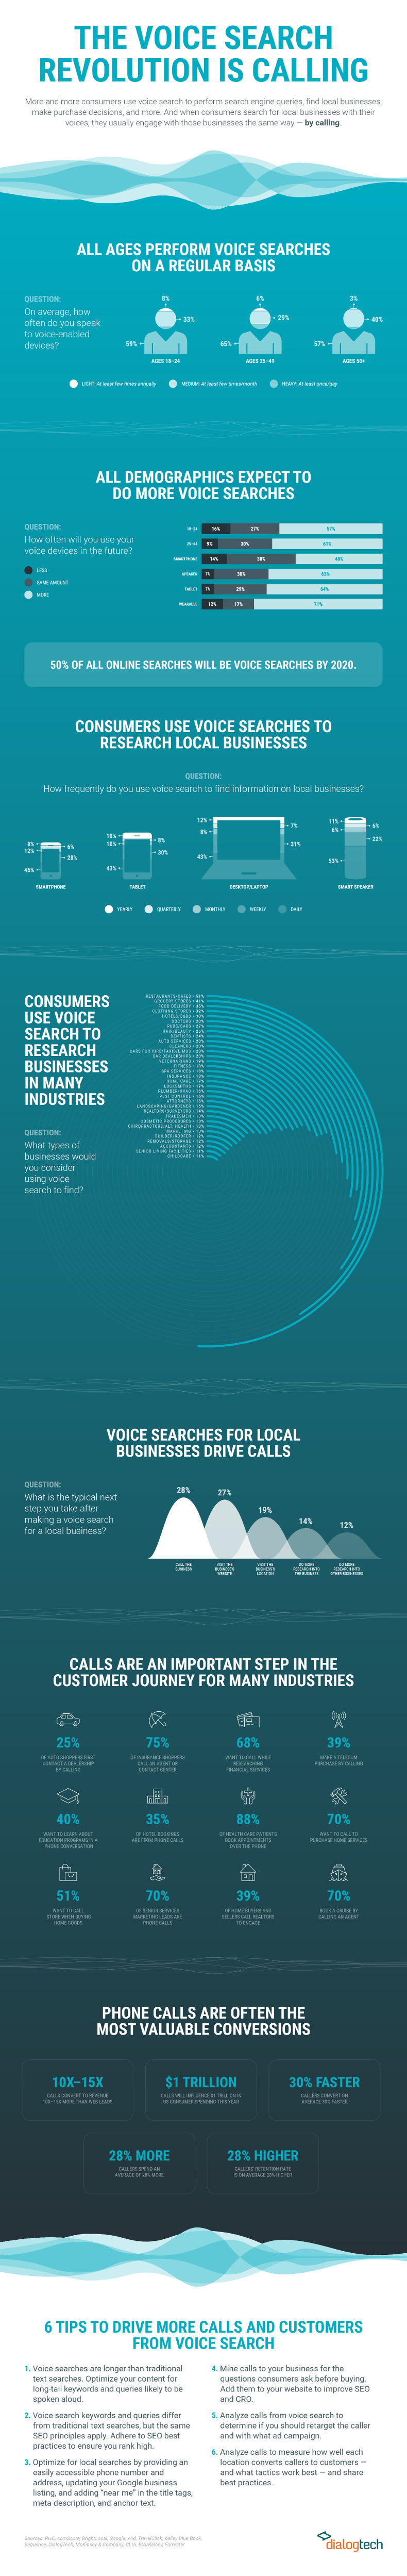 infographic outlines key voice search stats and tips for optimization